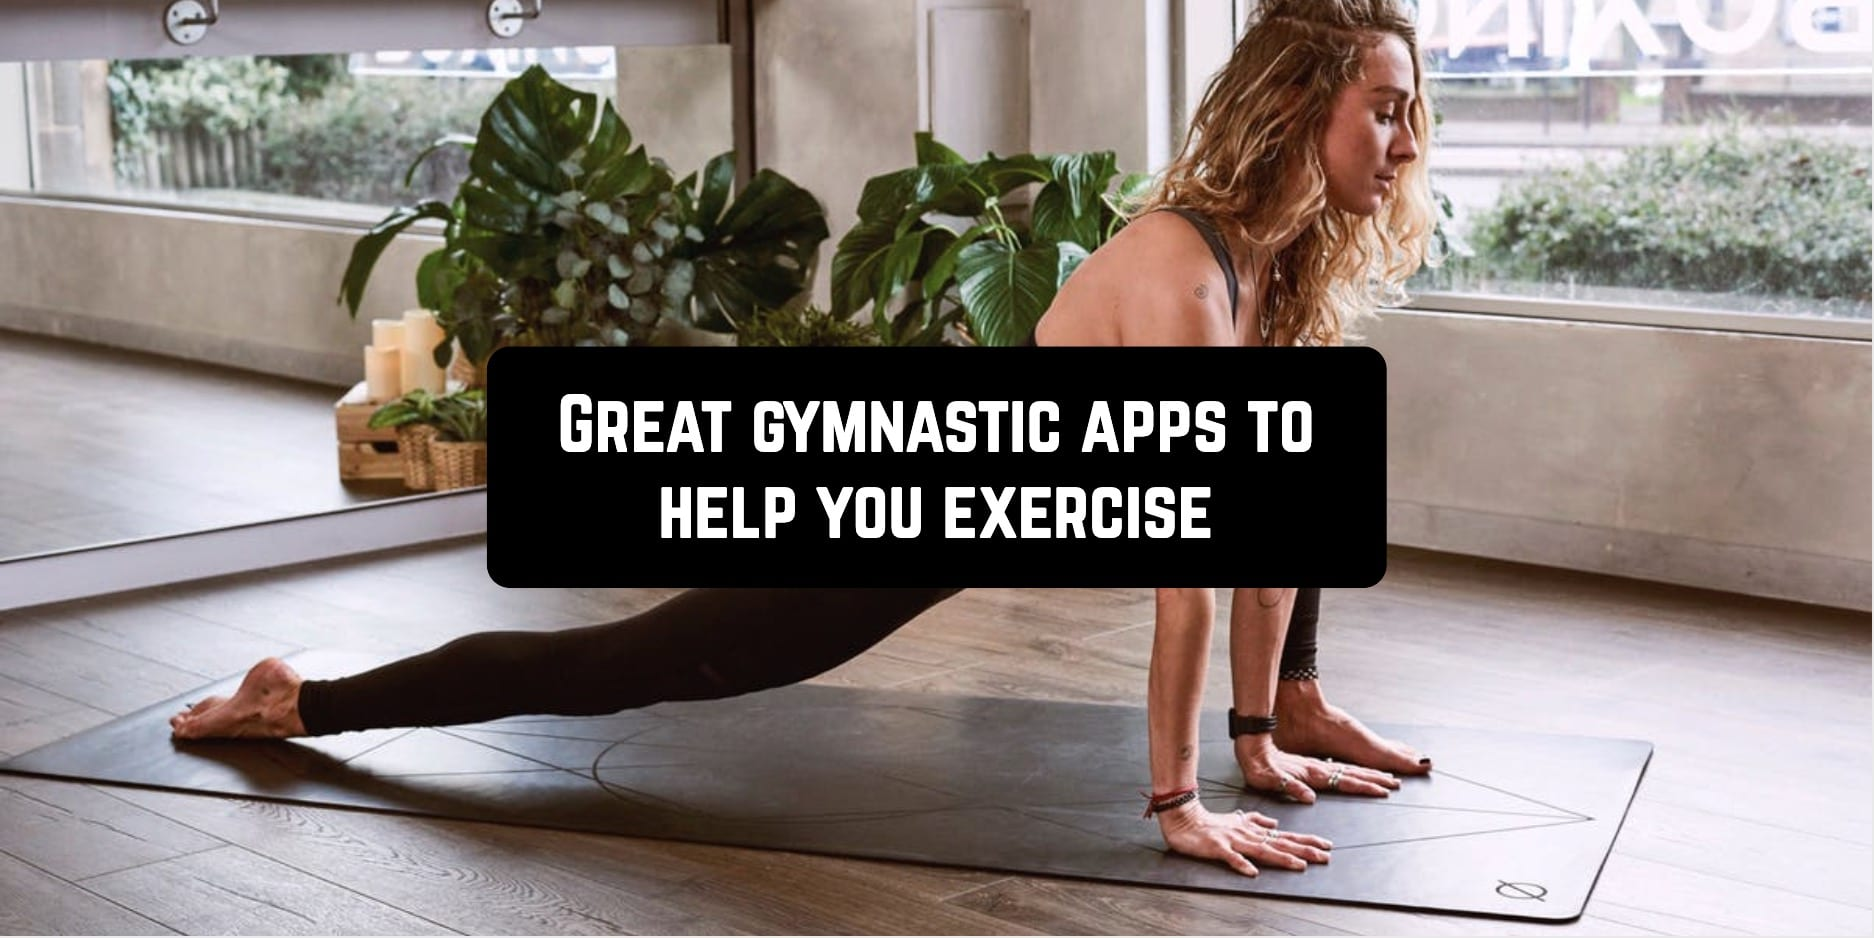 Great gymnastic apps to help you exercise